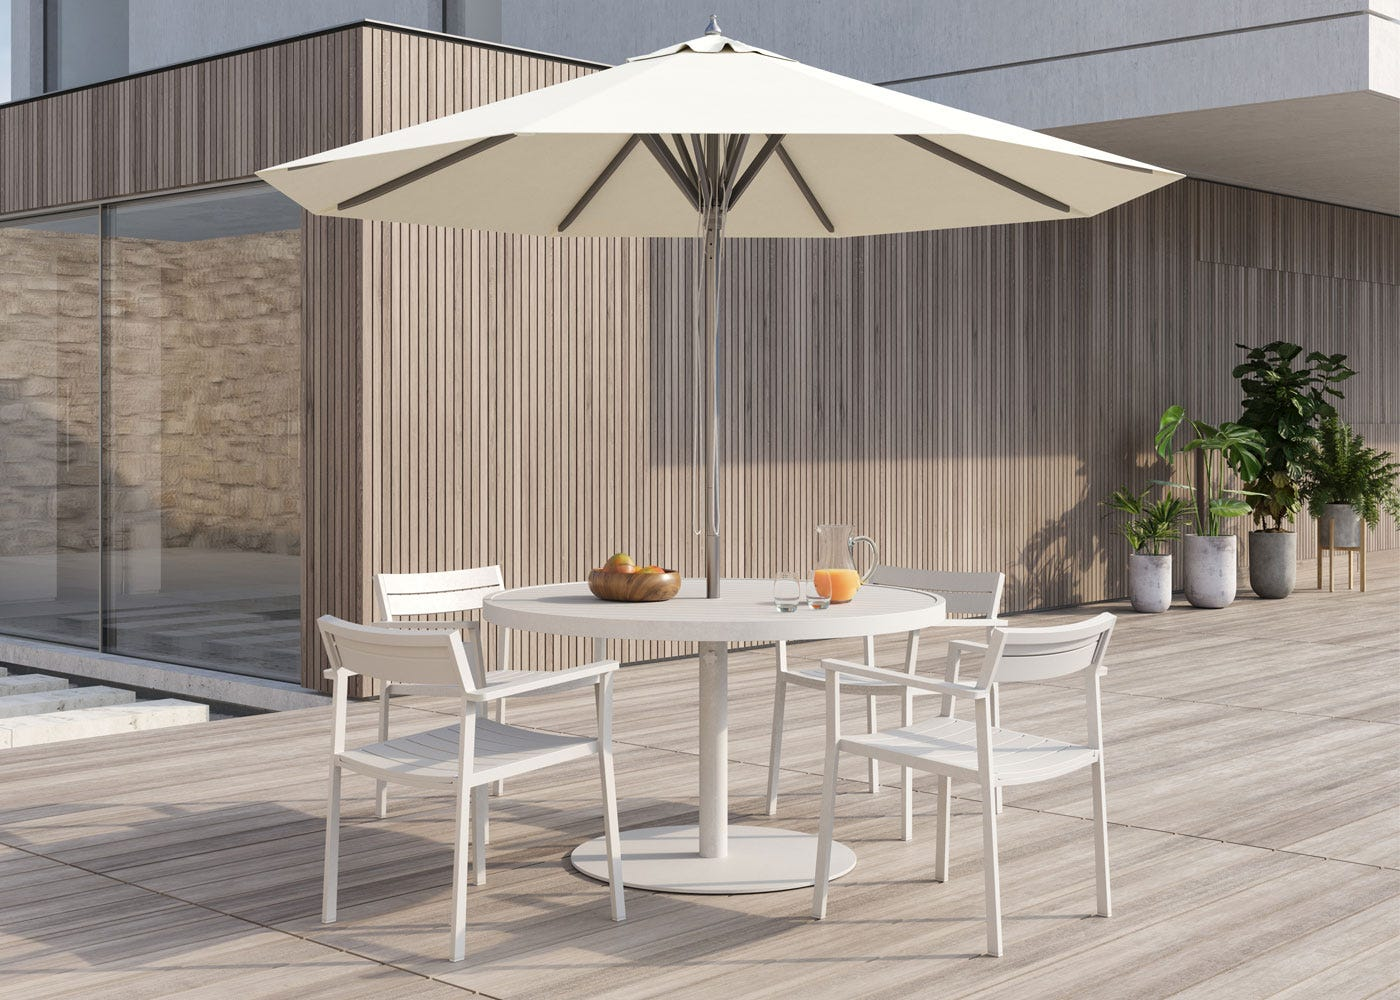 EOS Circular Outdoor Dining Table - White with matching chairs.